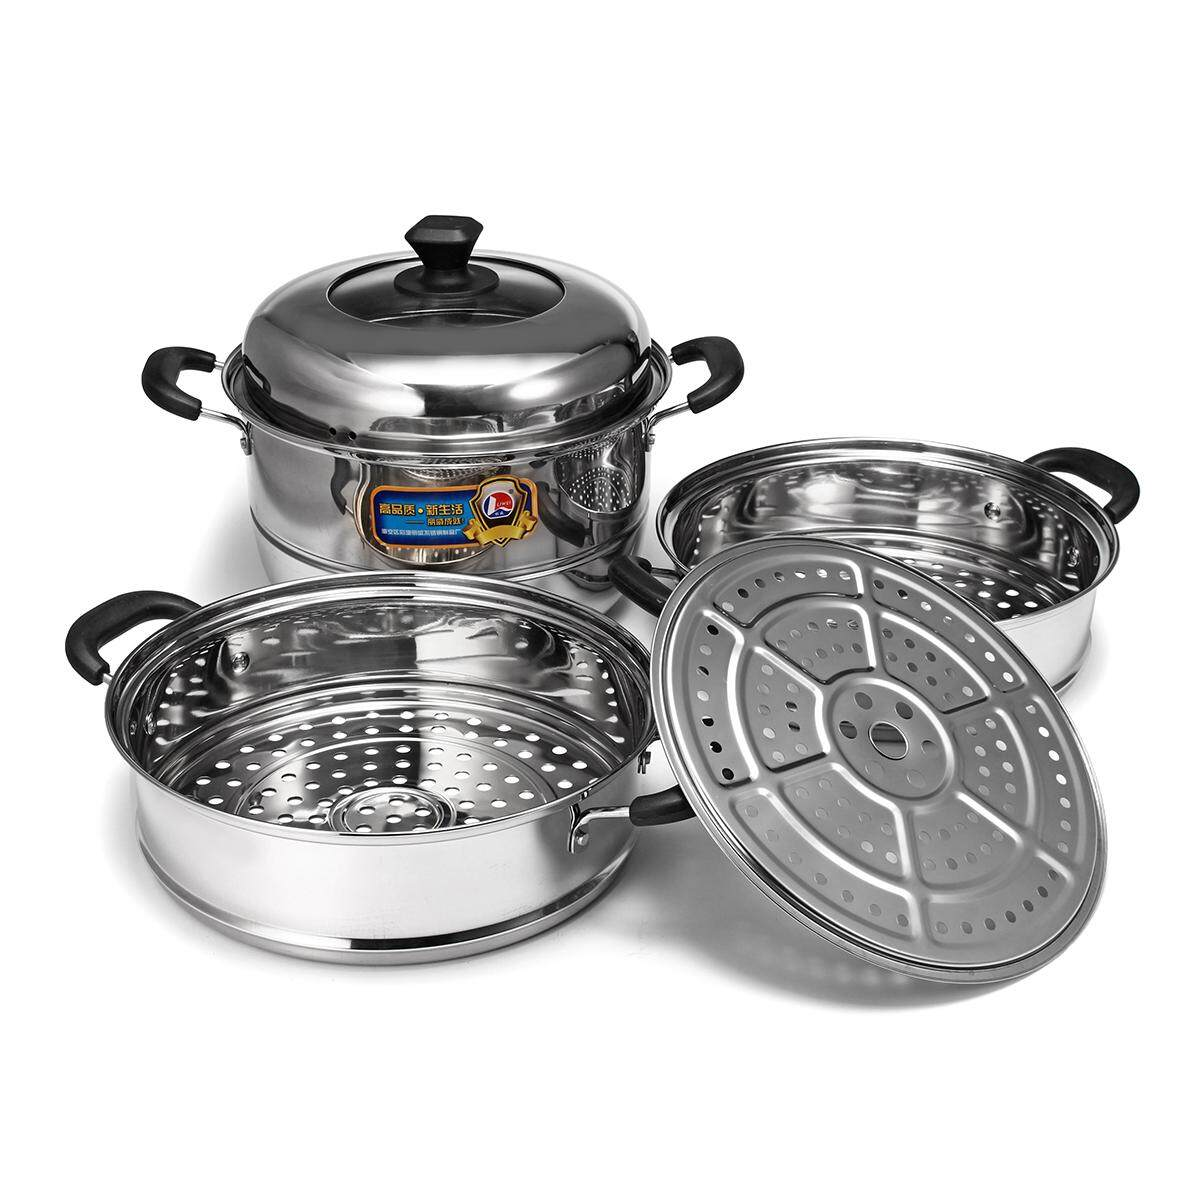 Concord Stainless Steel 3 Tier Steamer Steam Pot Cookware Avail In 3 Sizes [30cm] By Glimmer.